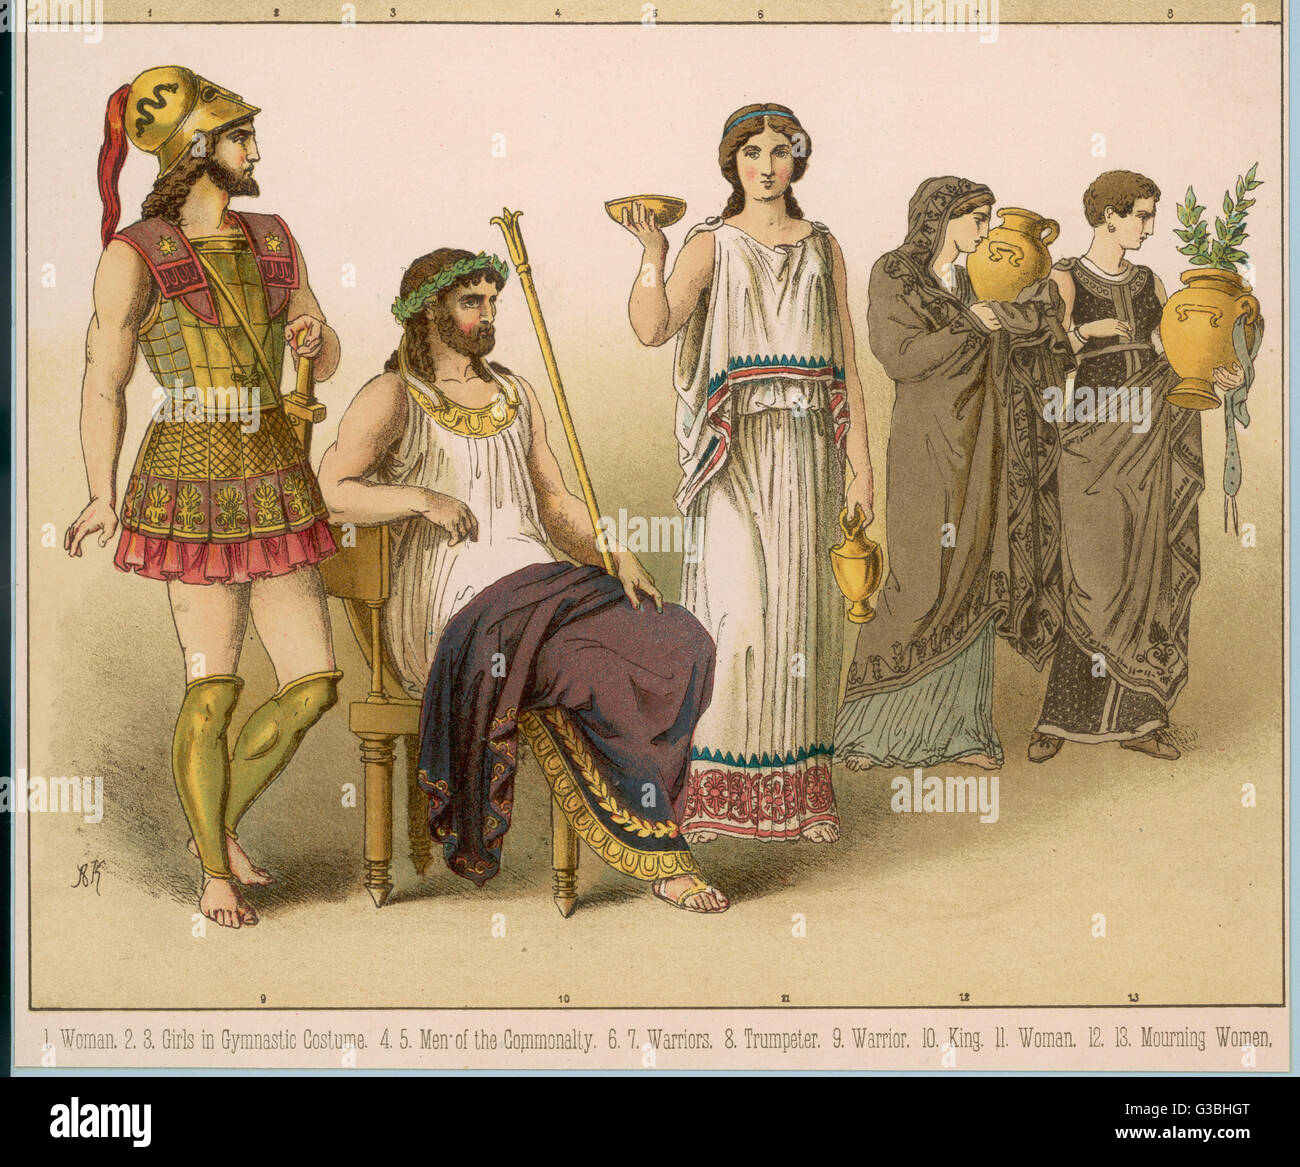 Various Ancient Greek  costumes; left to right - a warrior, a King, a woman and  two mourning women.       Date: - Stock Image